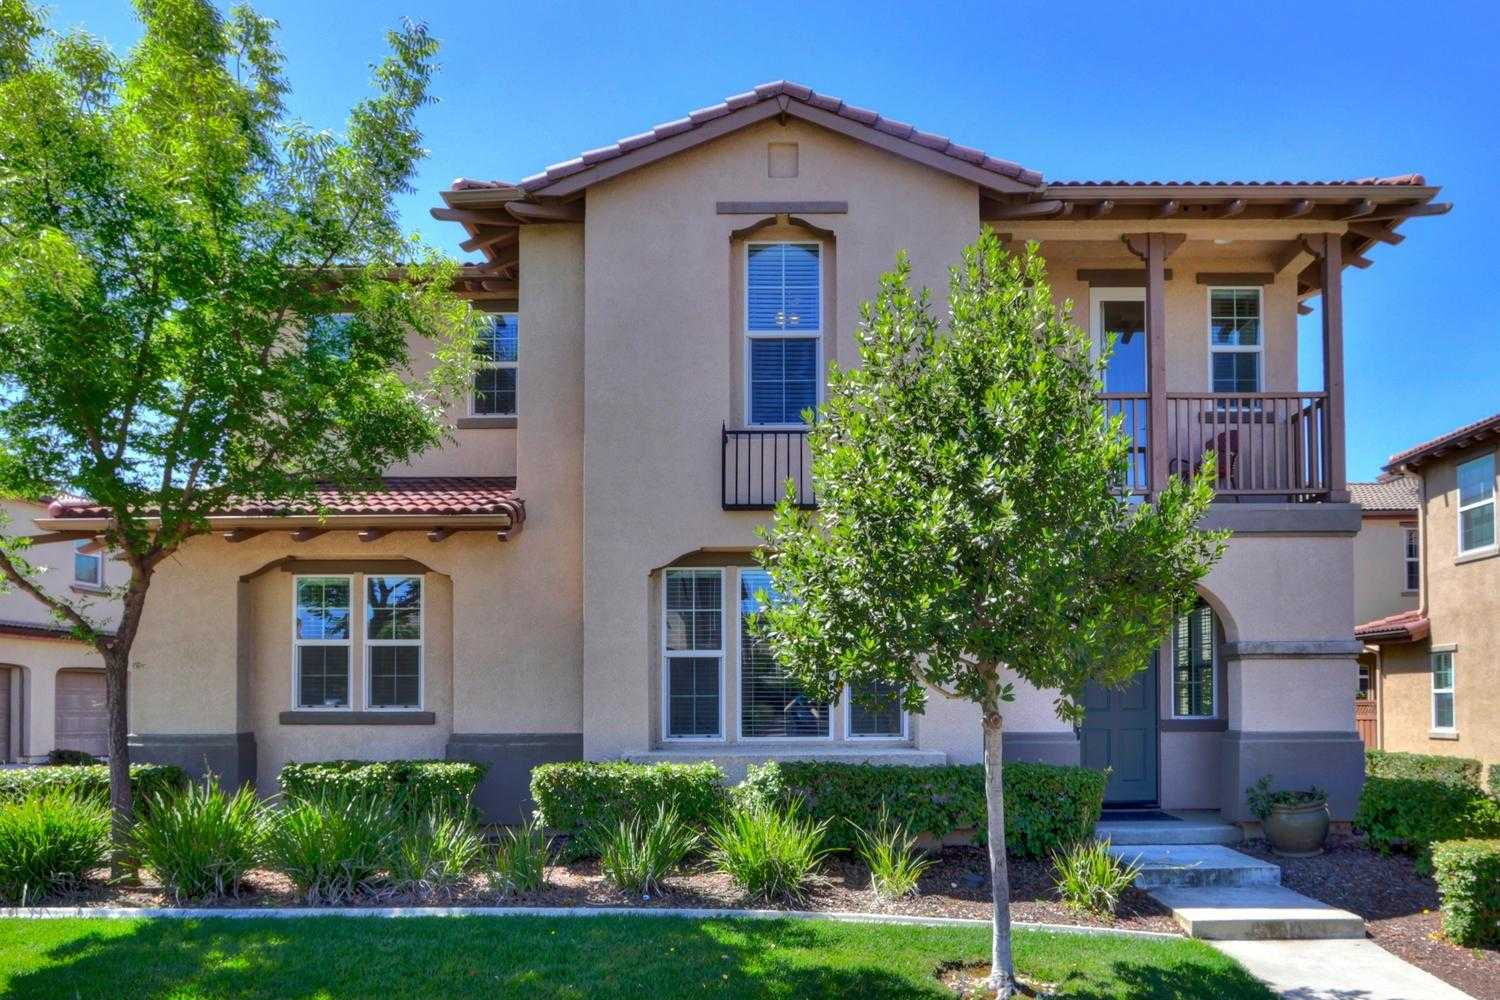 $525,000 - 4Br/3Ba -  for Sale in Folsom